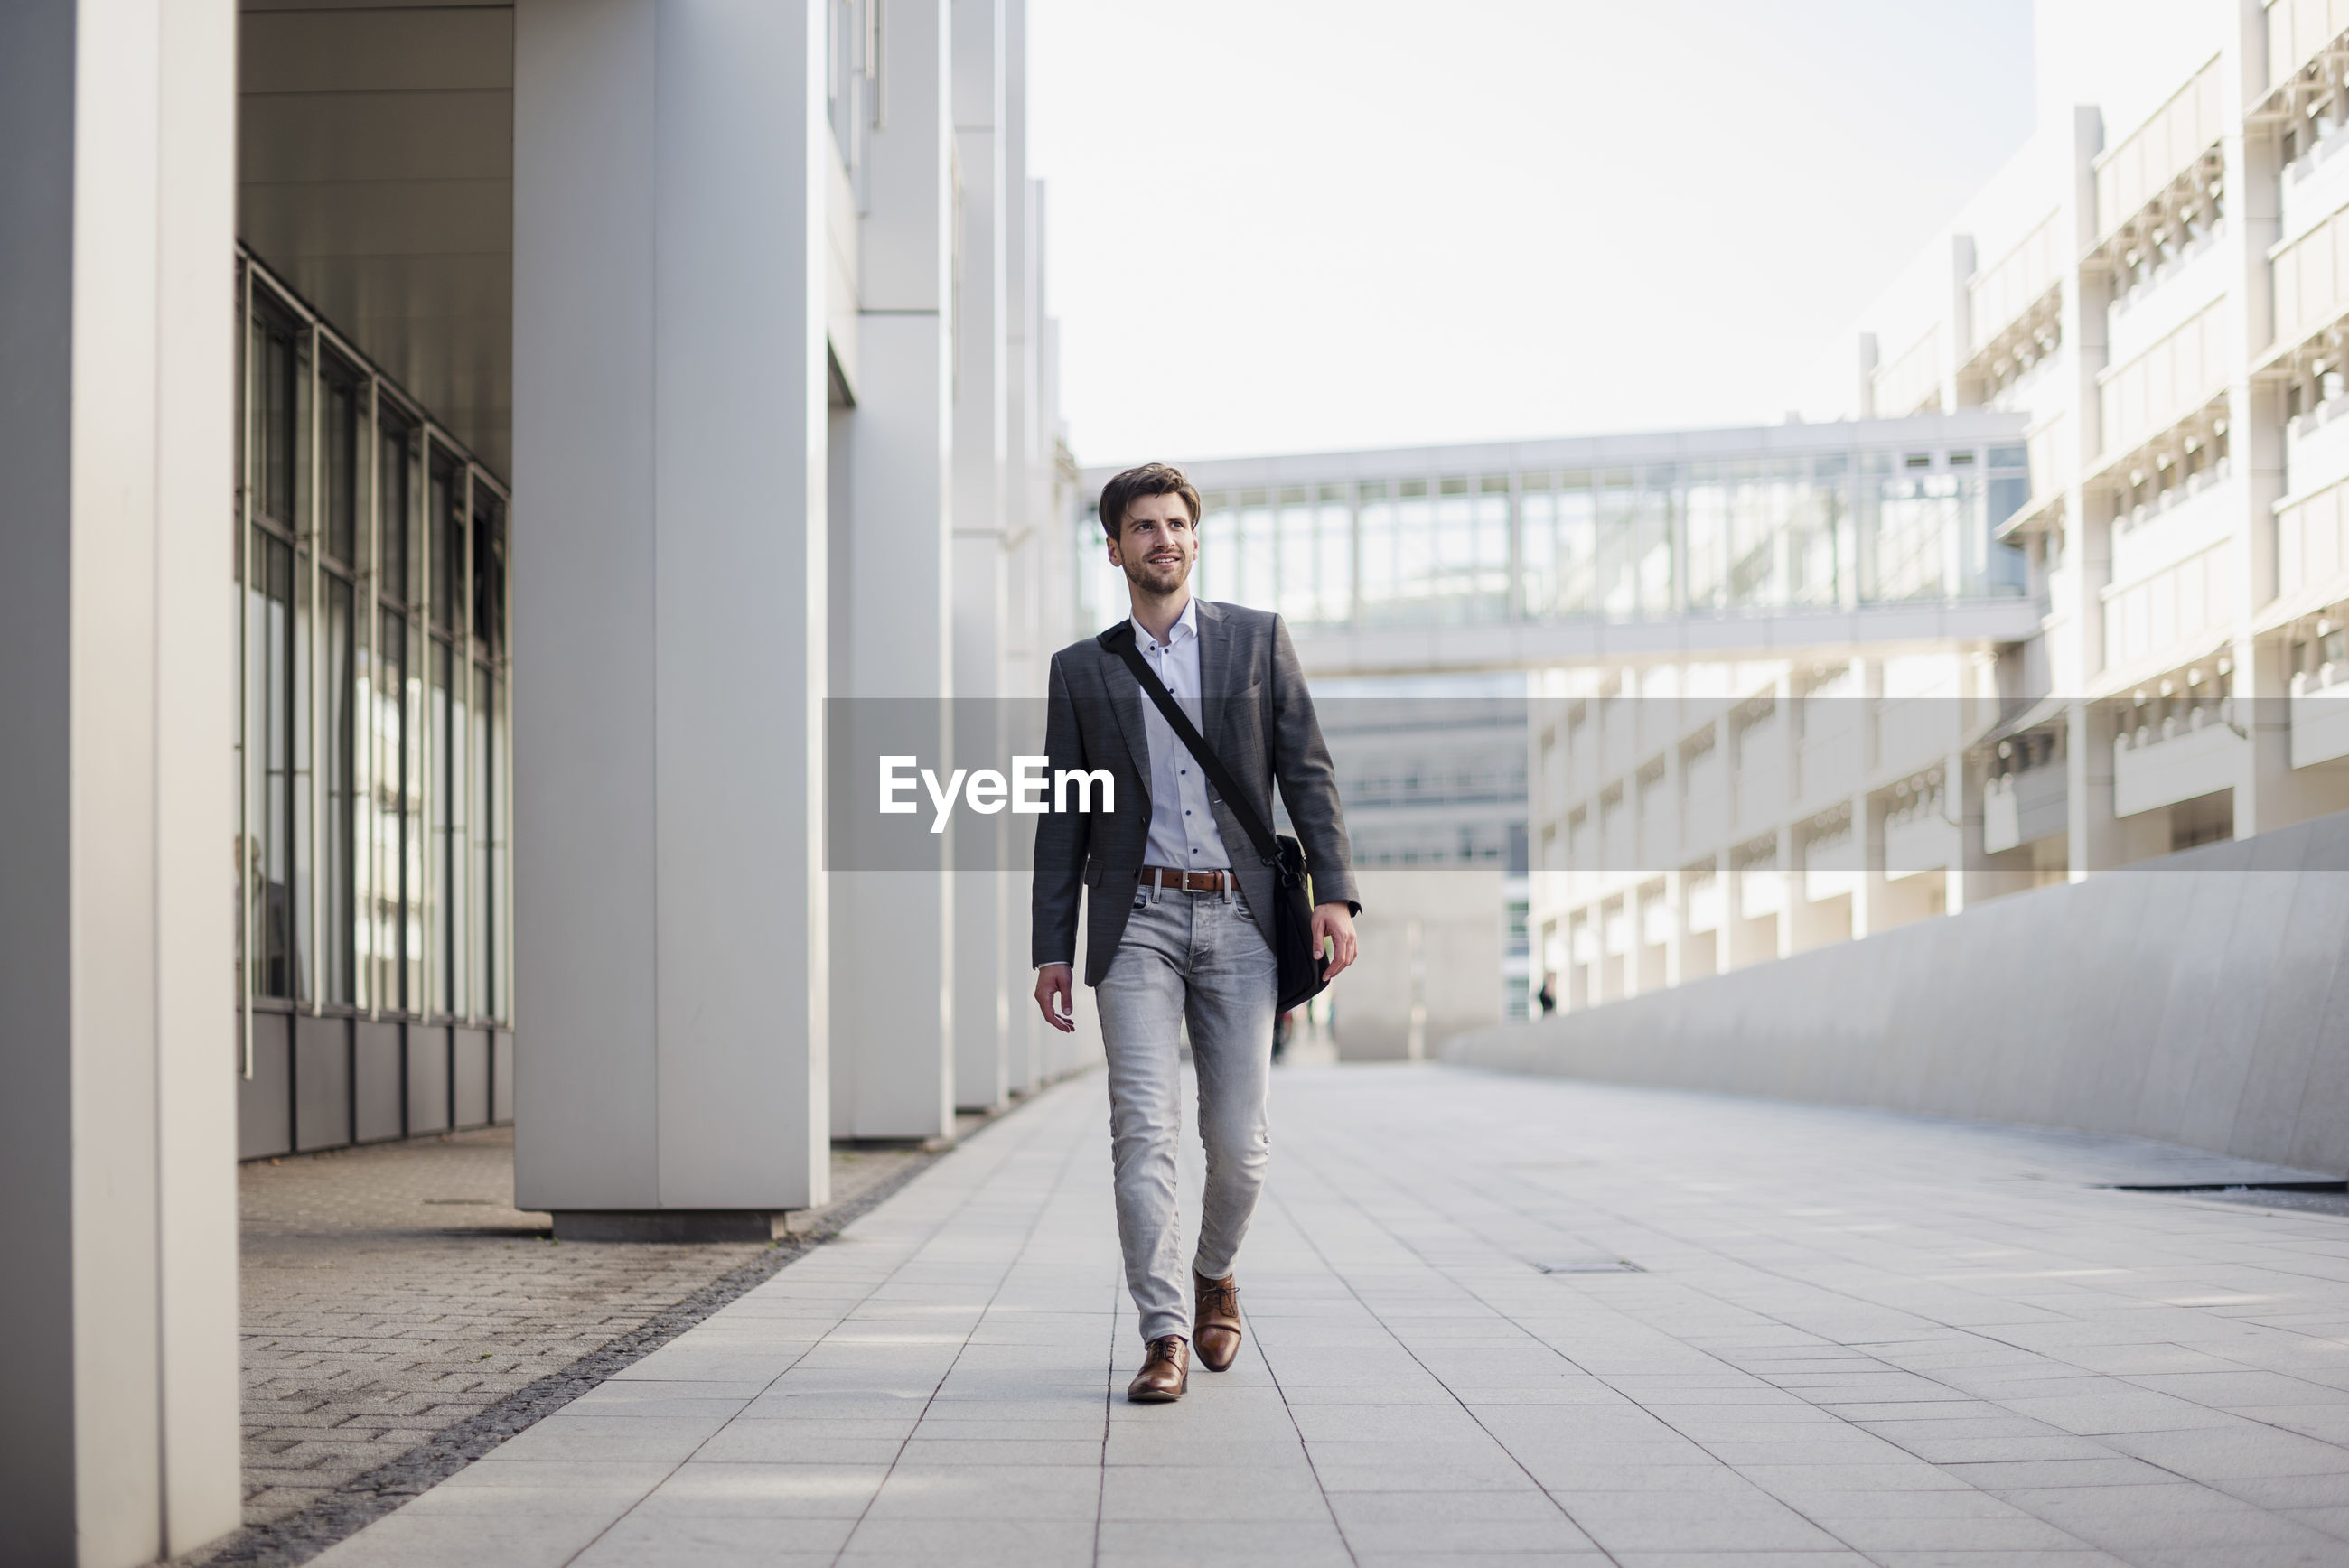 FULL LENGTH OF A MAN WALKING IN BUILDING